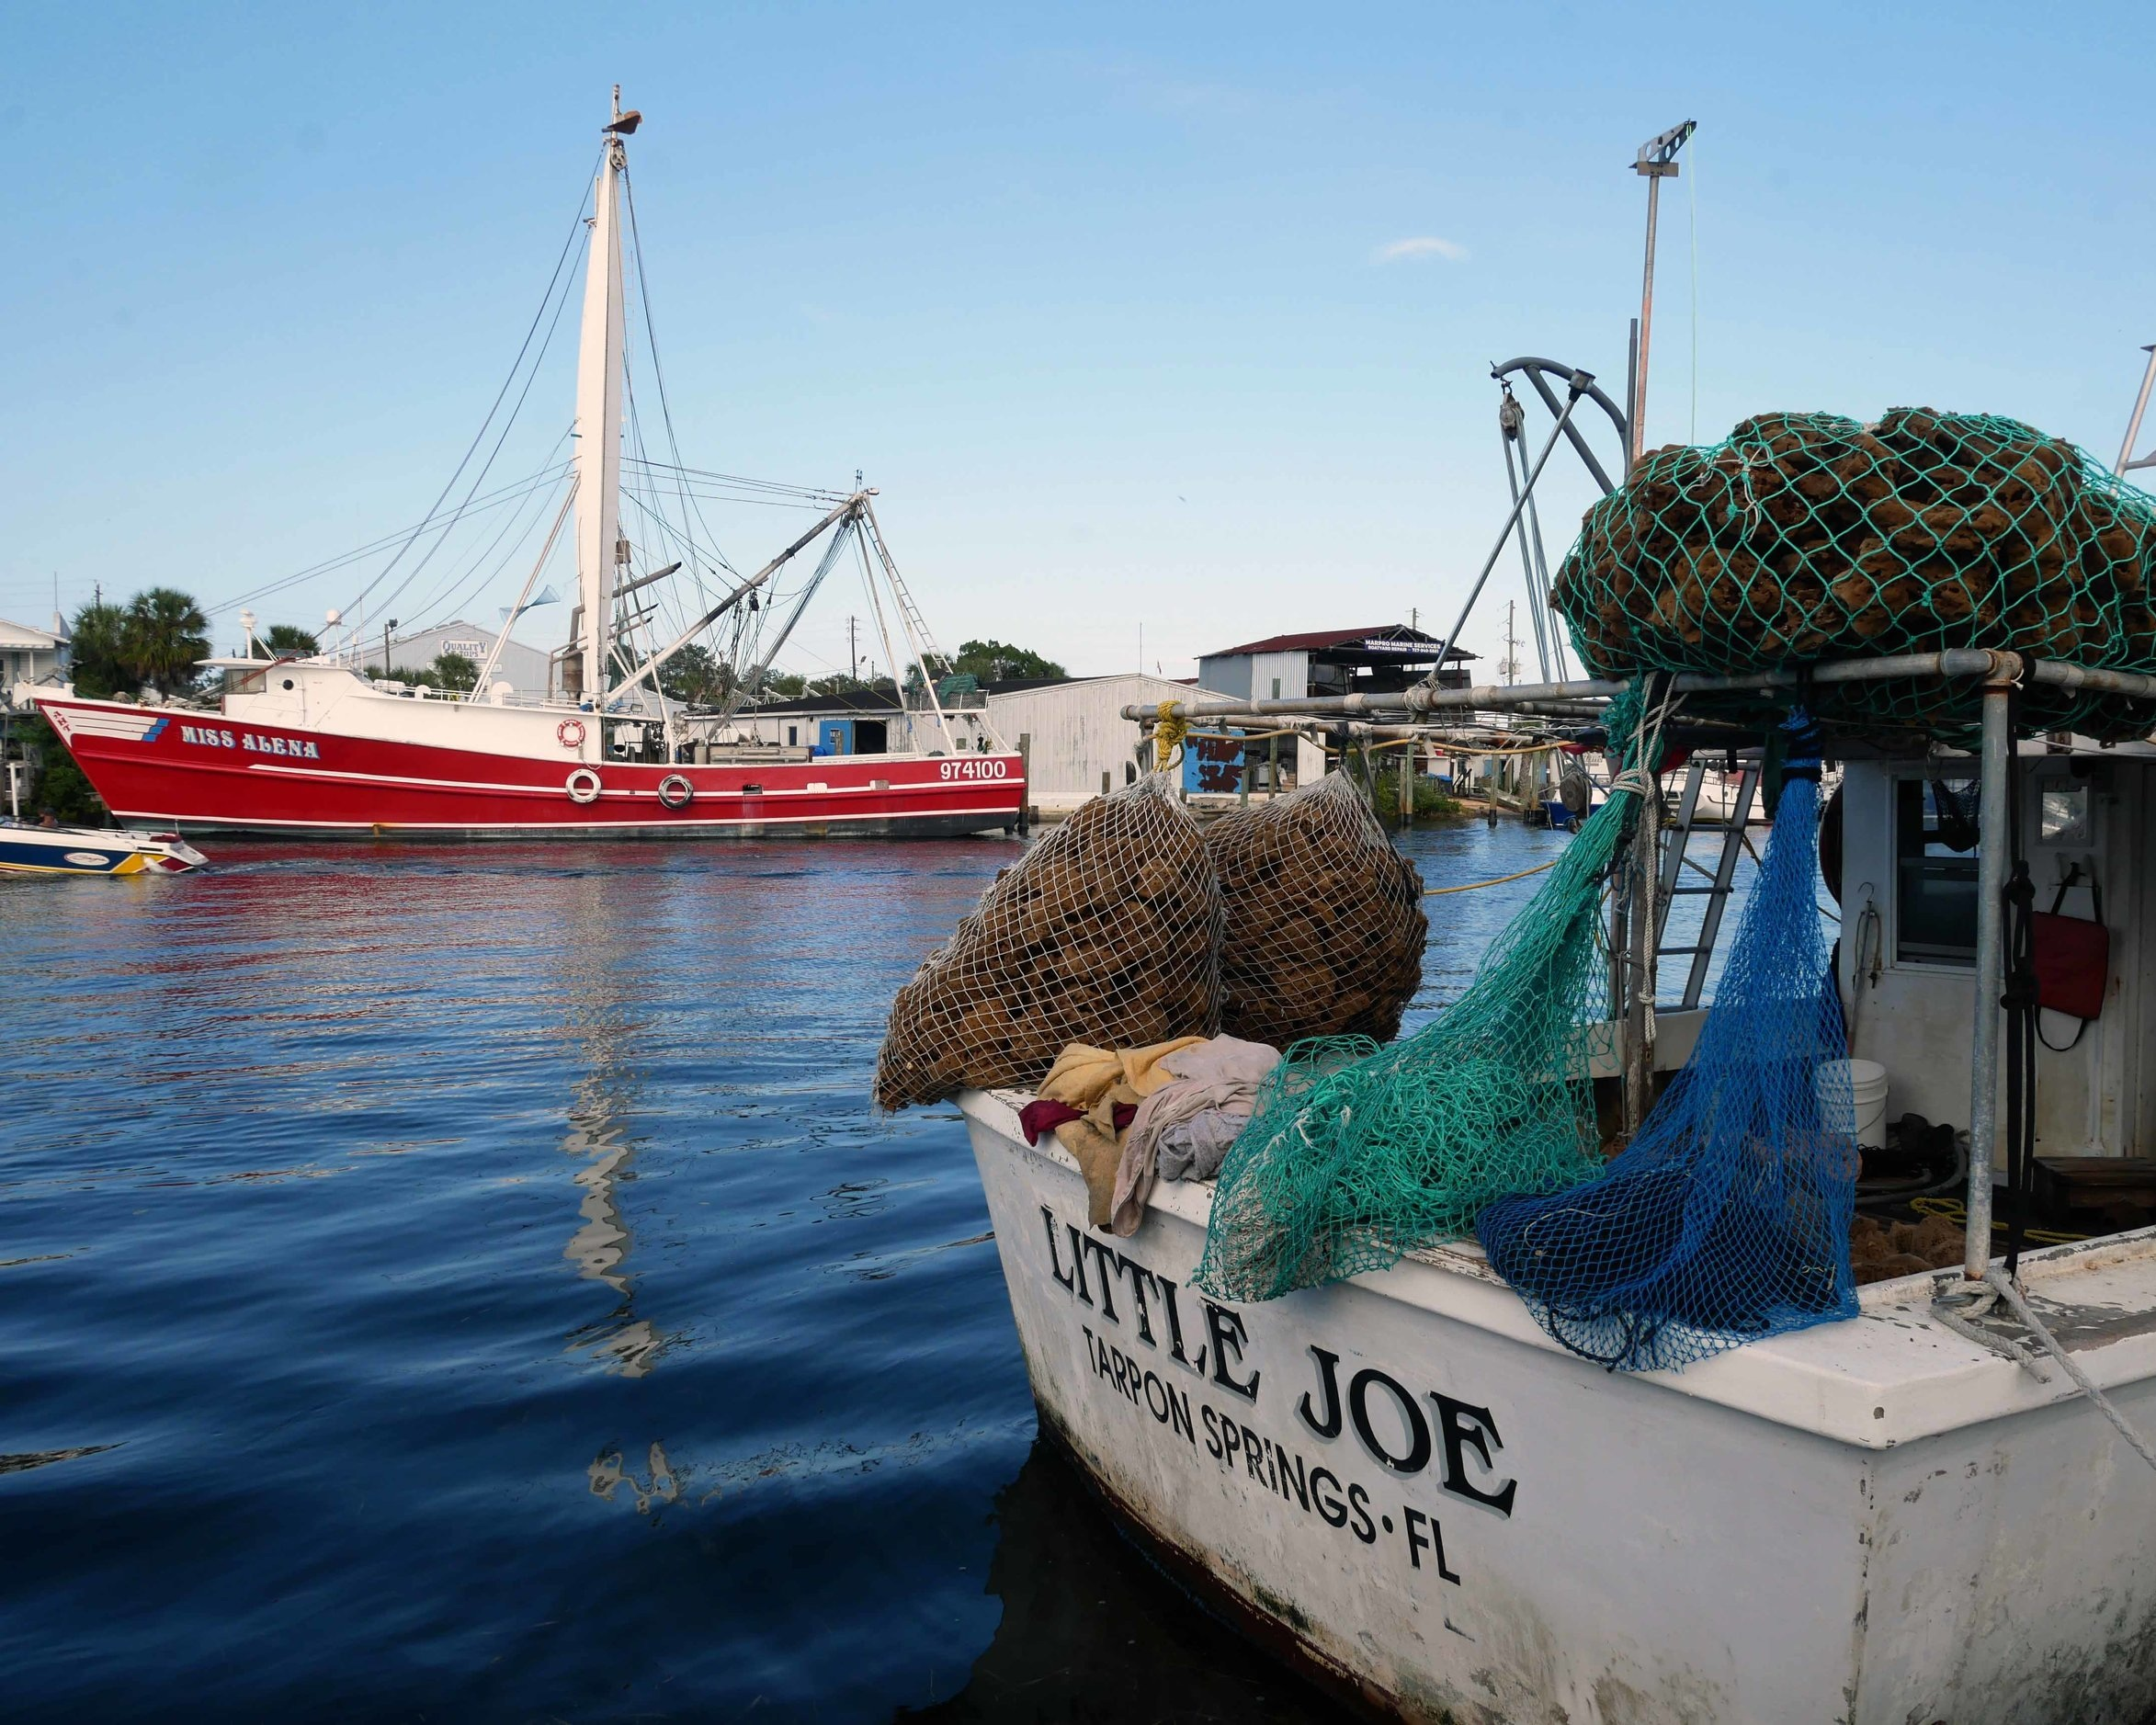 The sponge docks in Tarpon Springs, where sponges are still harvested today